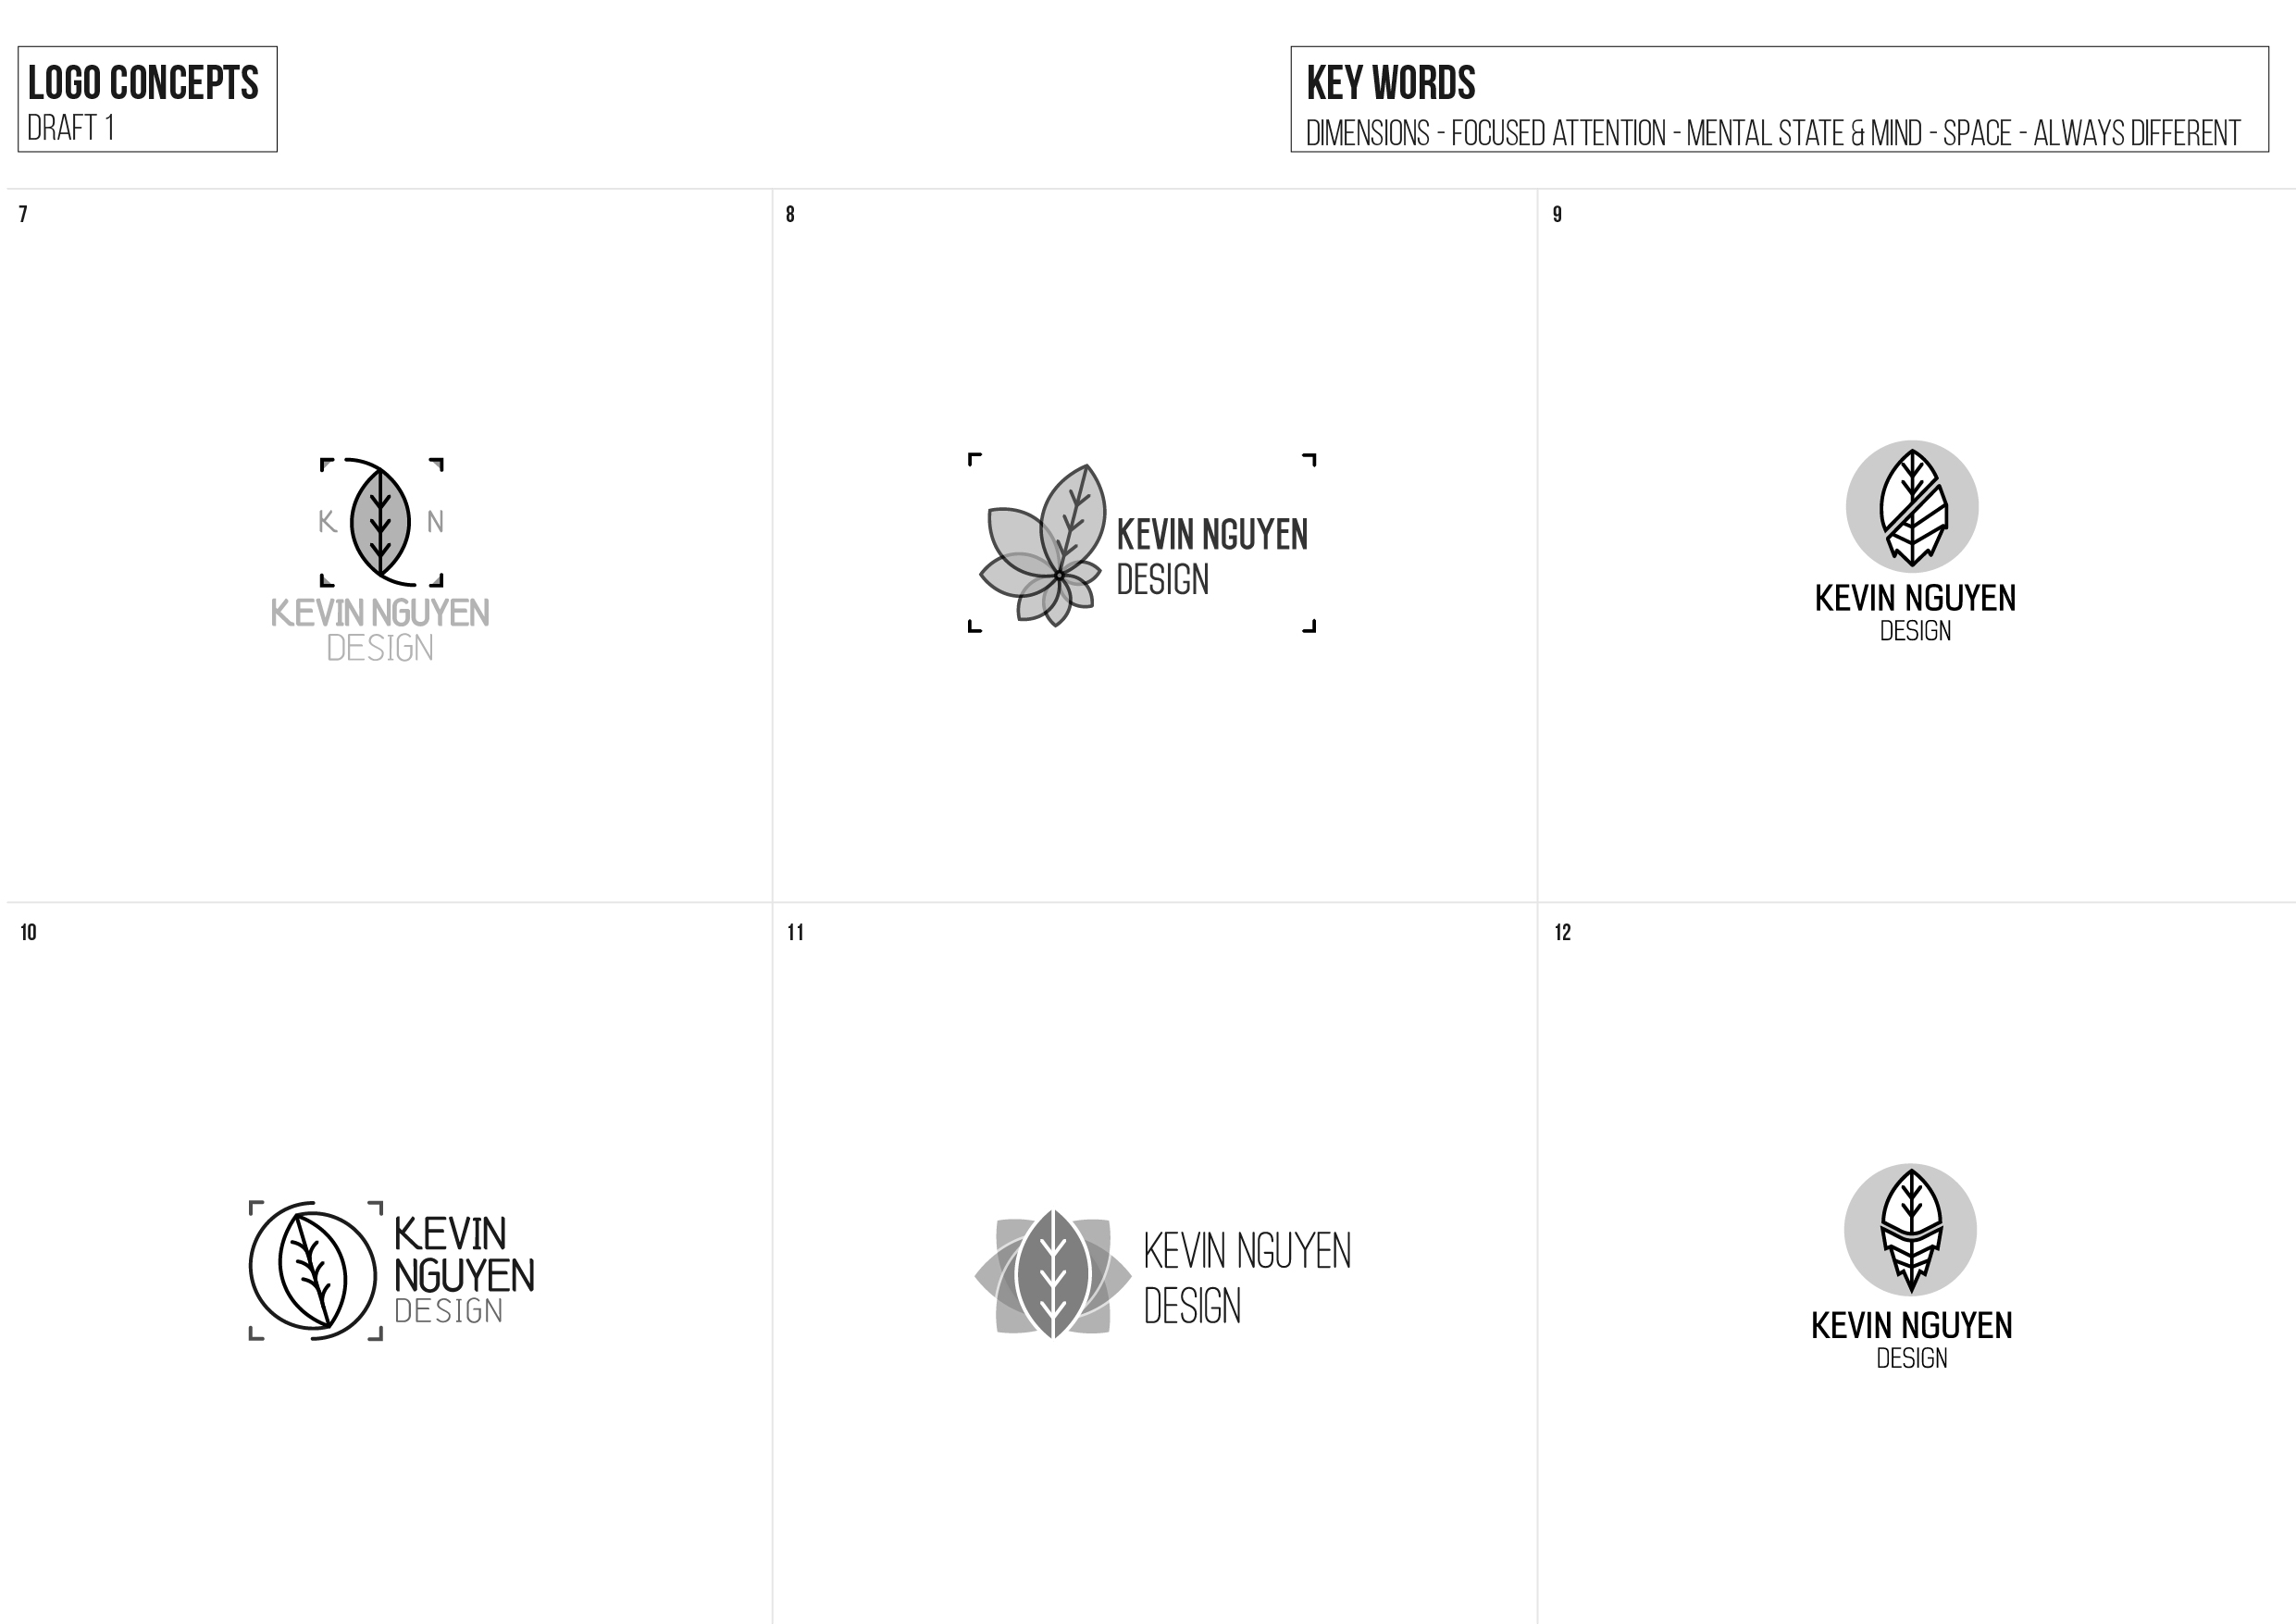 logo designs - draft 1-04.jpg